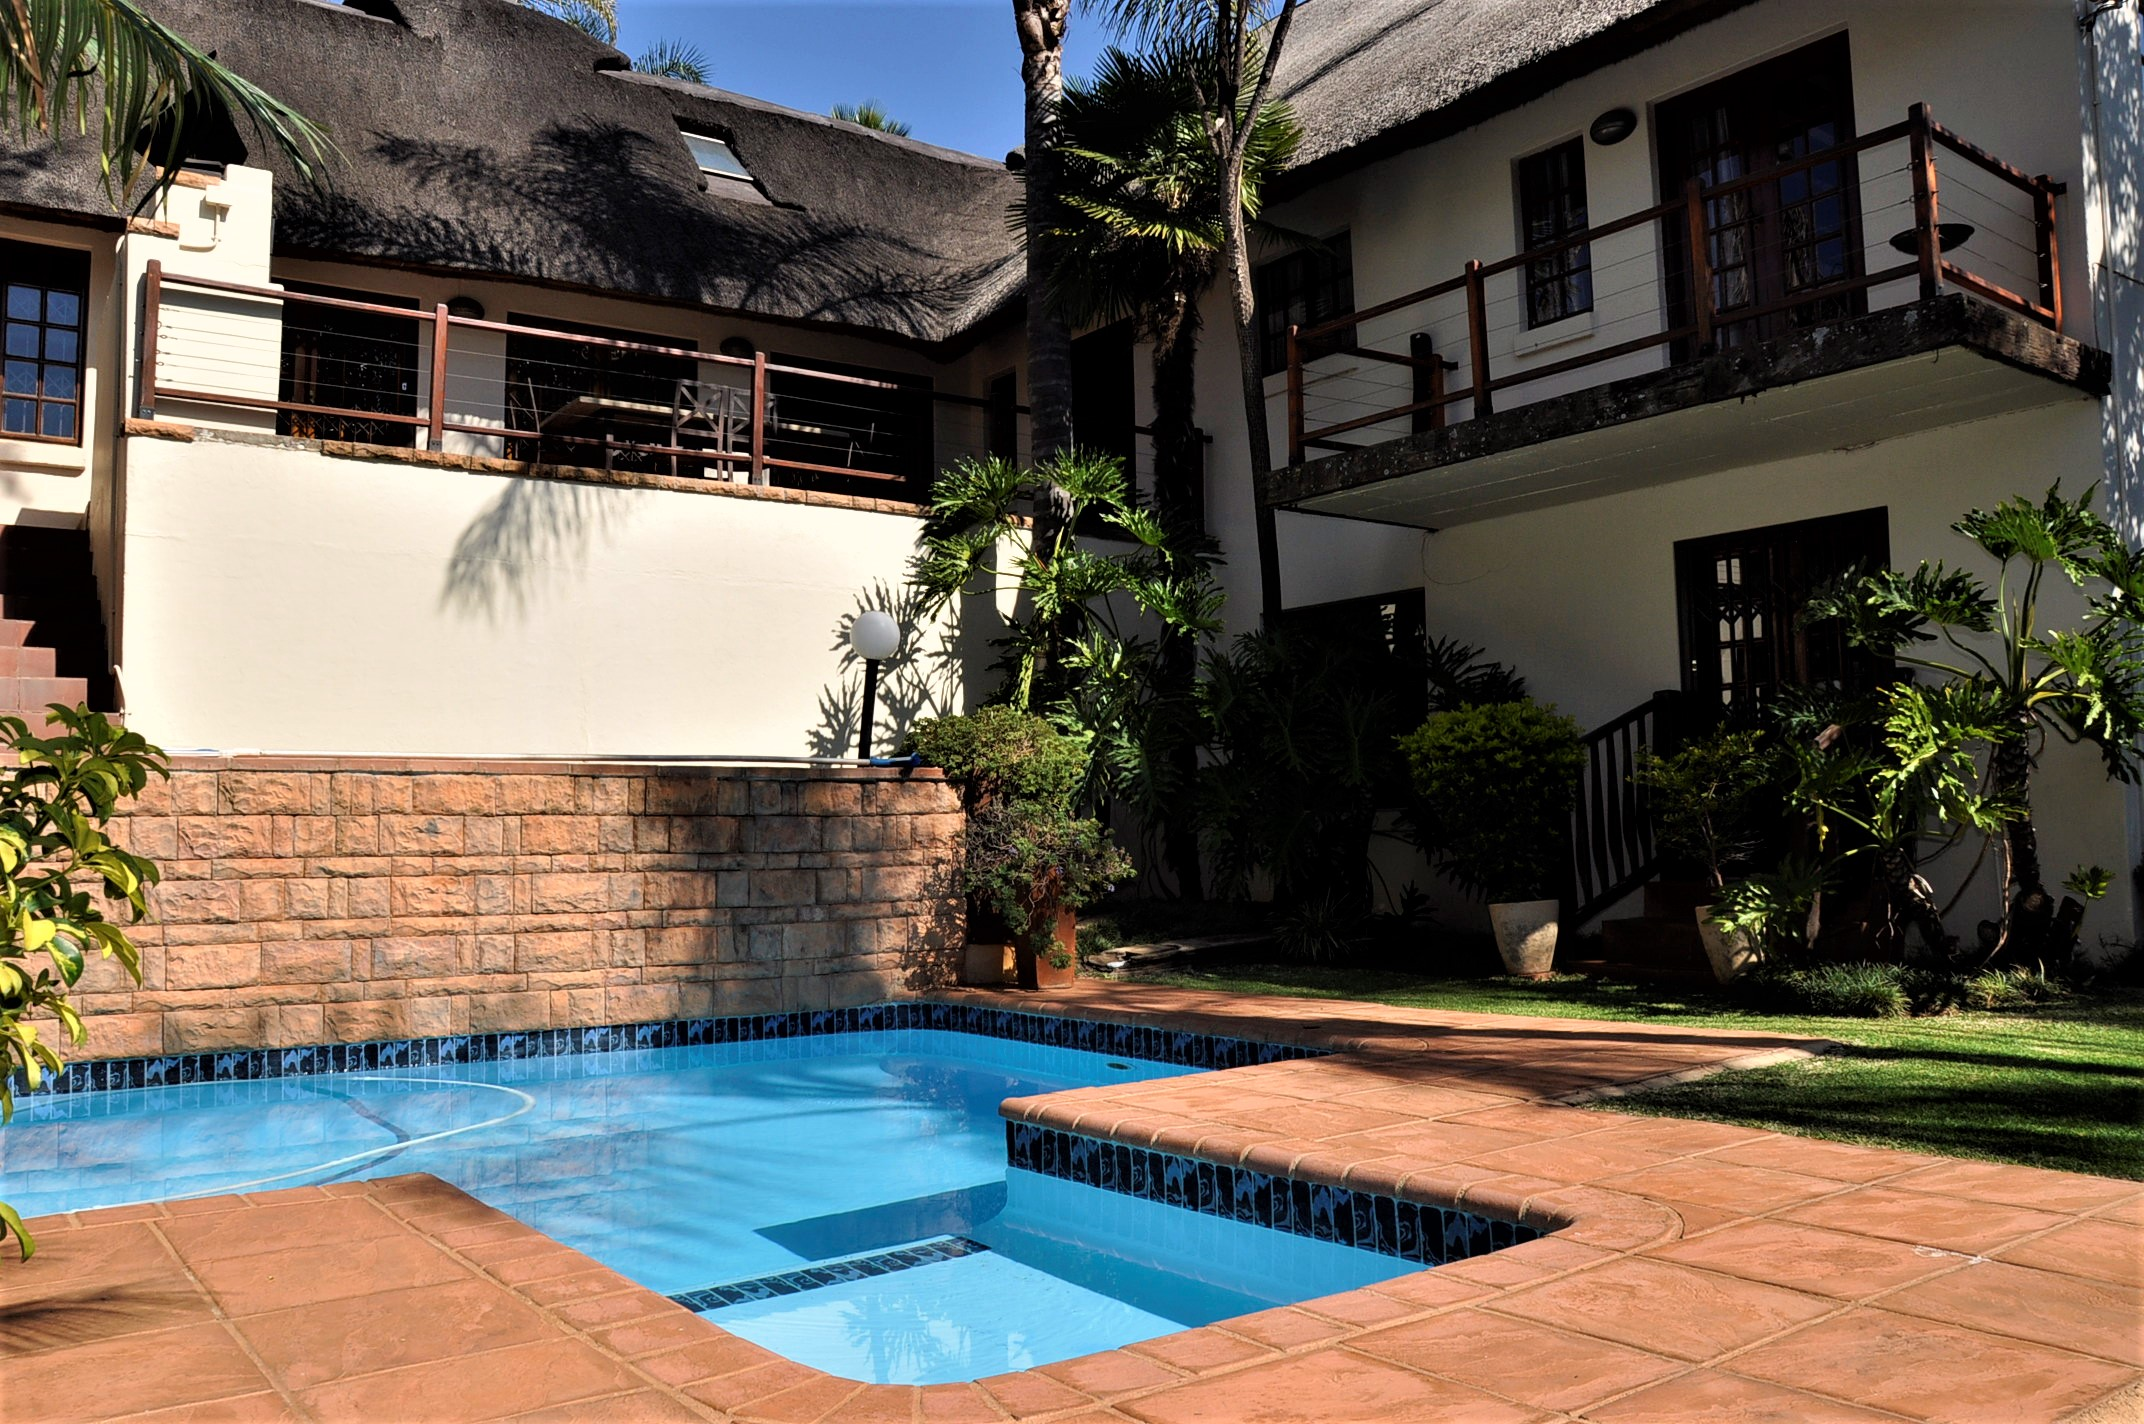 274 Cygnus Street is a Semi-Furnished 6-Bedroom House For Sale and To Let in Waterkloof Ridge Pretoria East by Feel-at-Home Properties